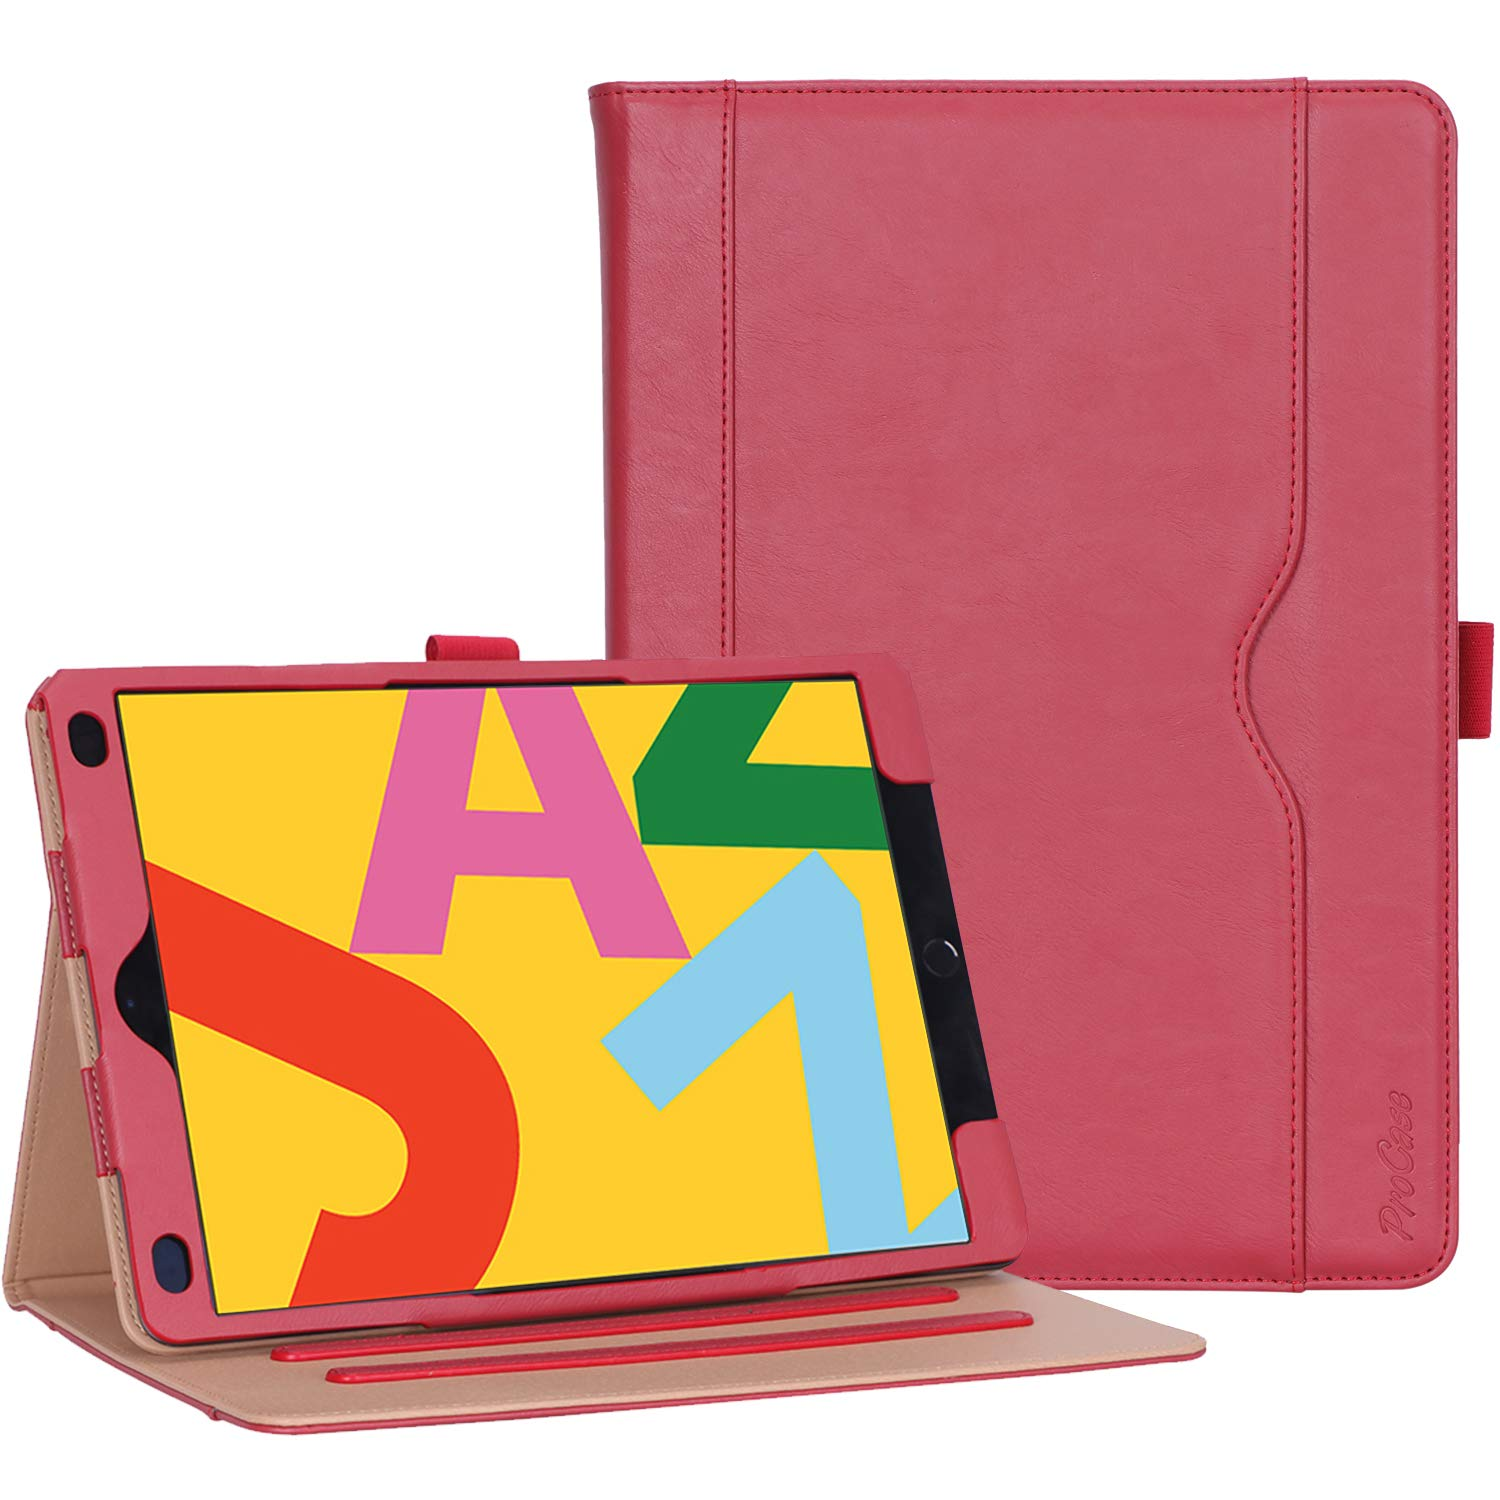 iPad 10.2 7th/8th 2019 2020 Generation Leather Folio Case | ProCase